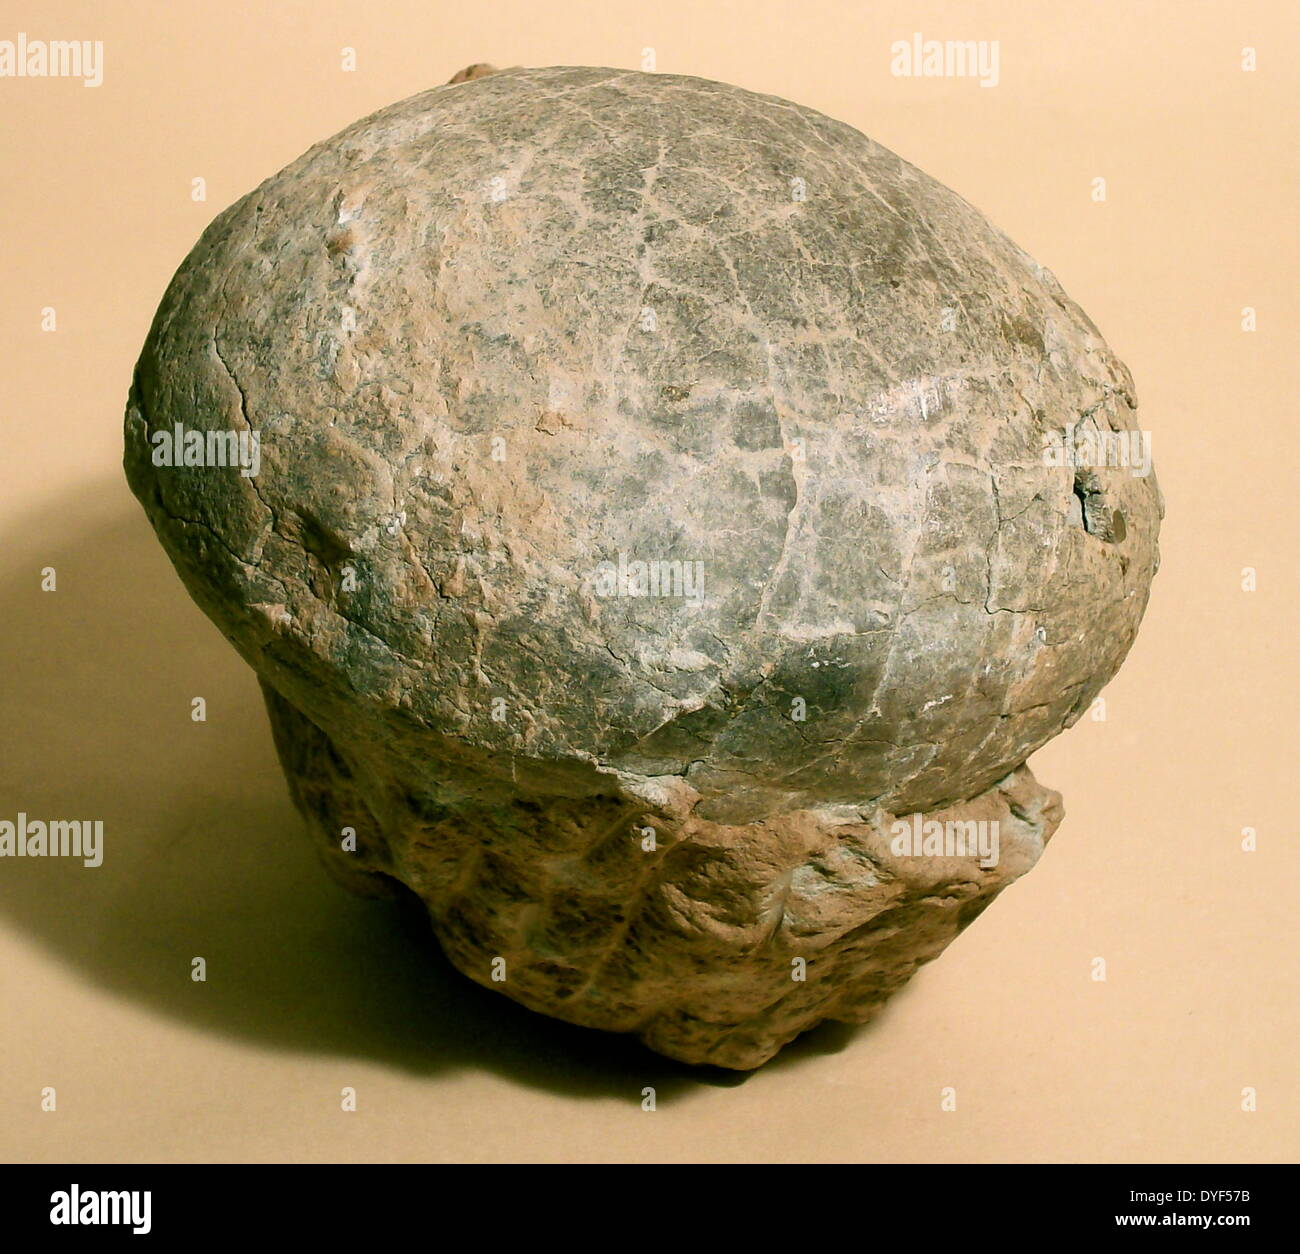 Fossilized egg of a dinosaur, probably a Hadrosaur from the Late Cretaceous period, 84 to 71 million years ago. - Stock Image